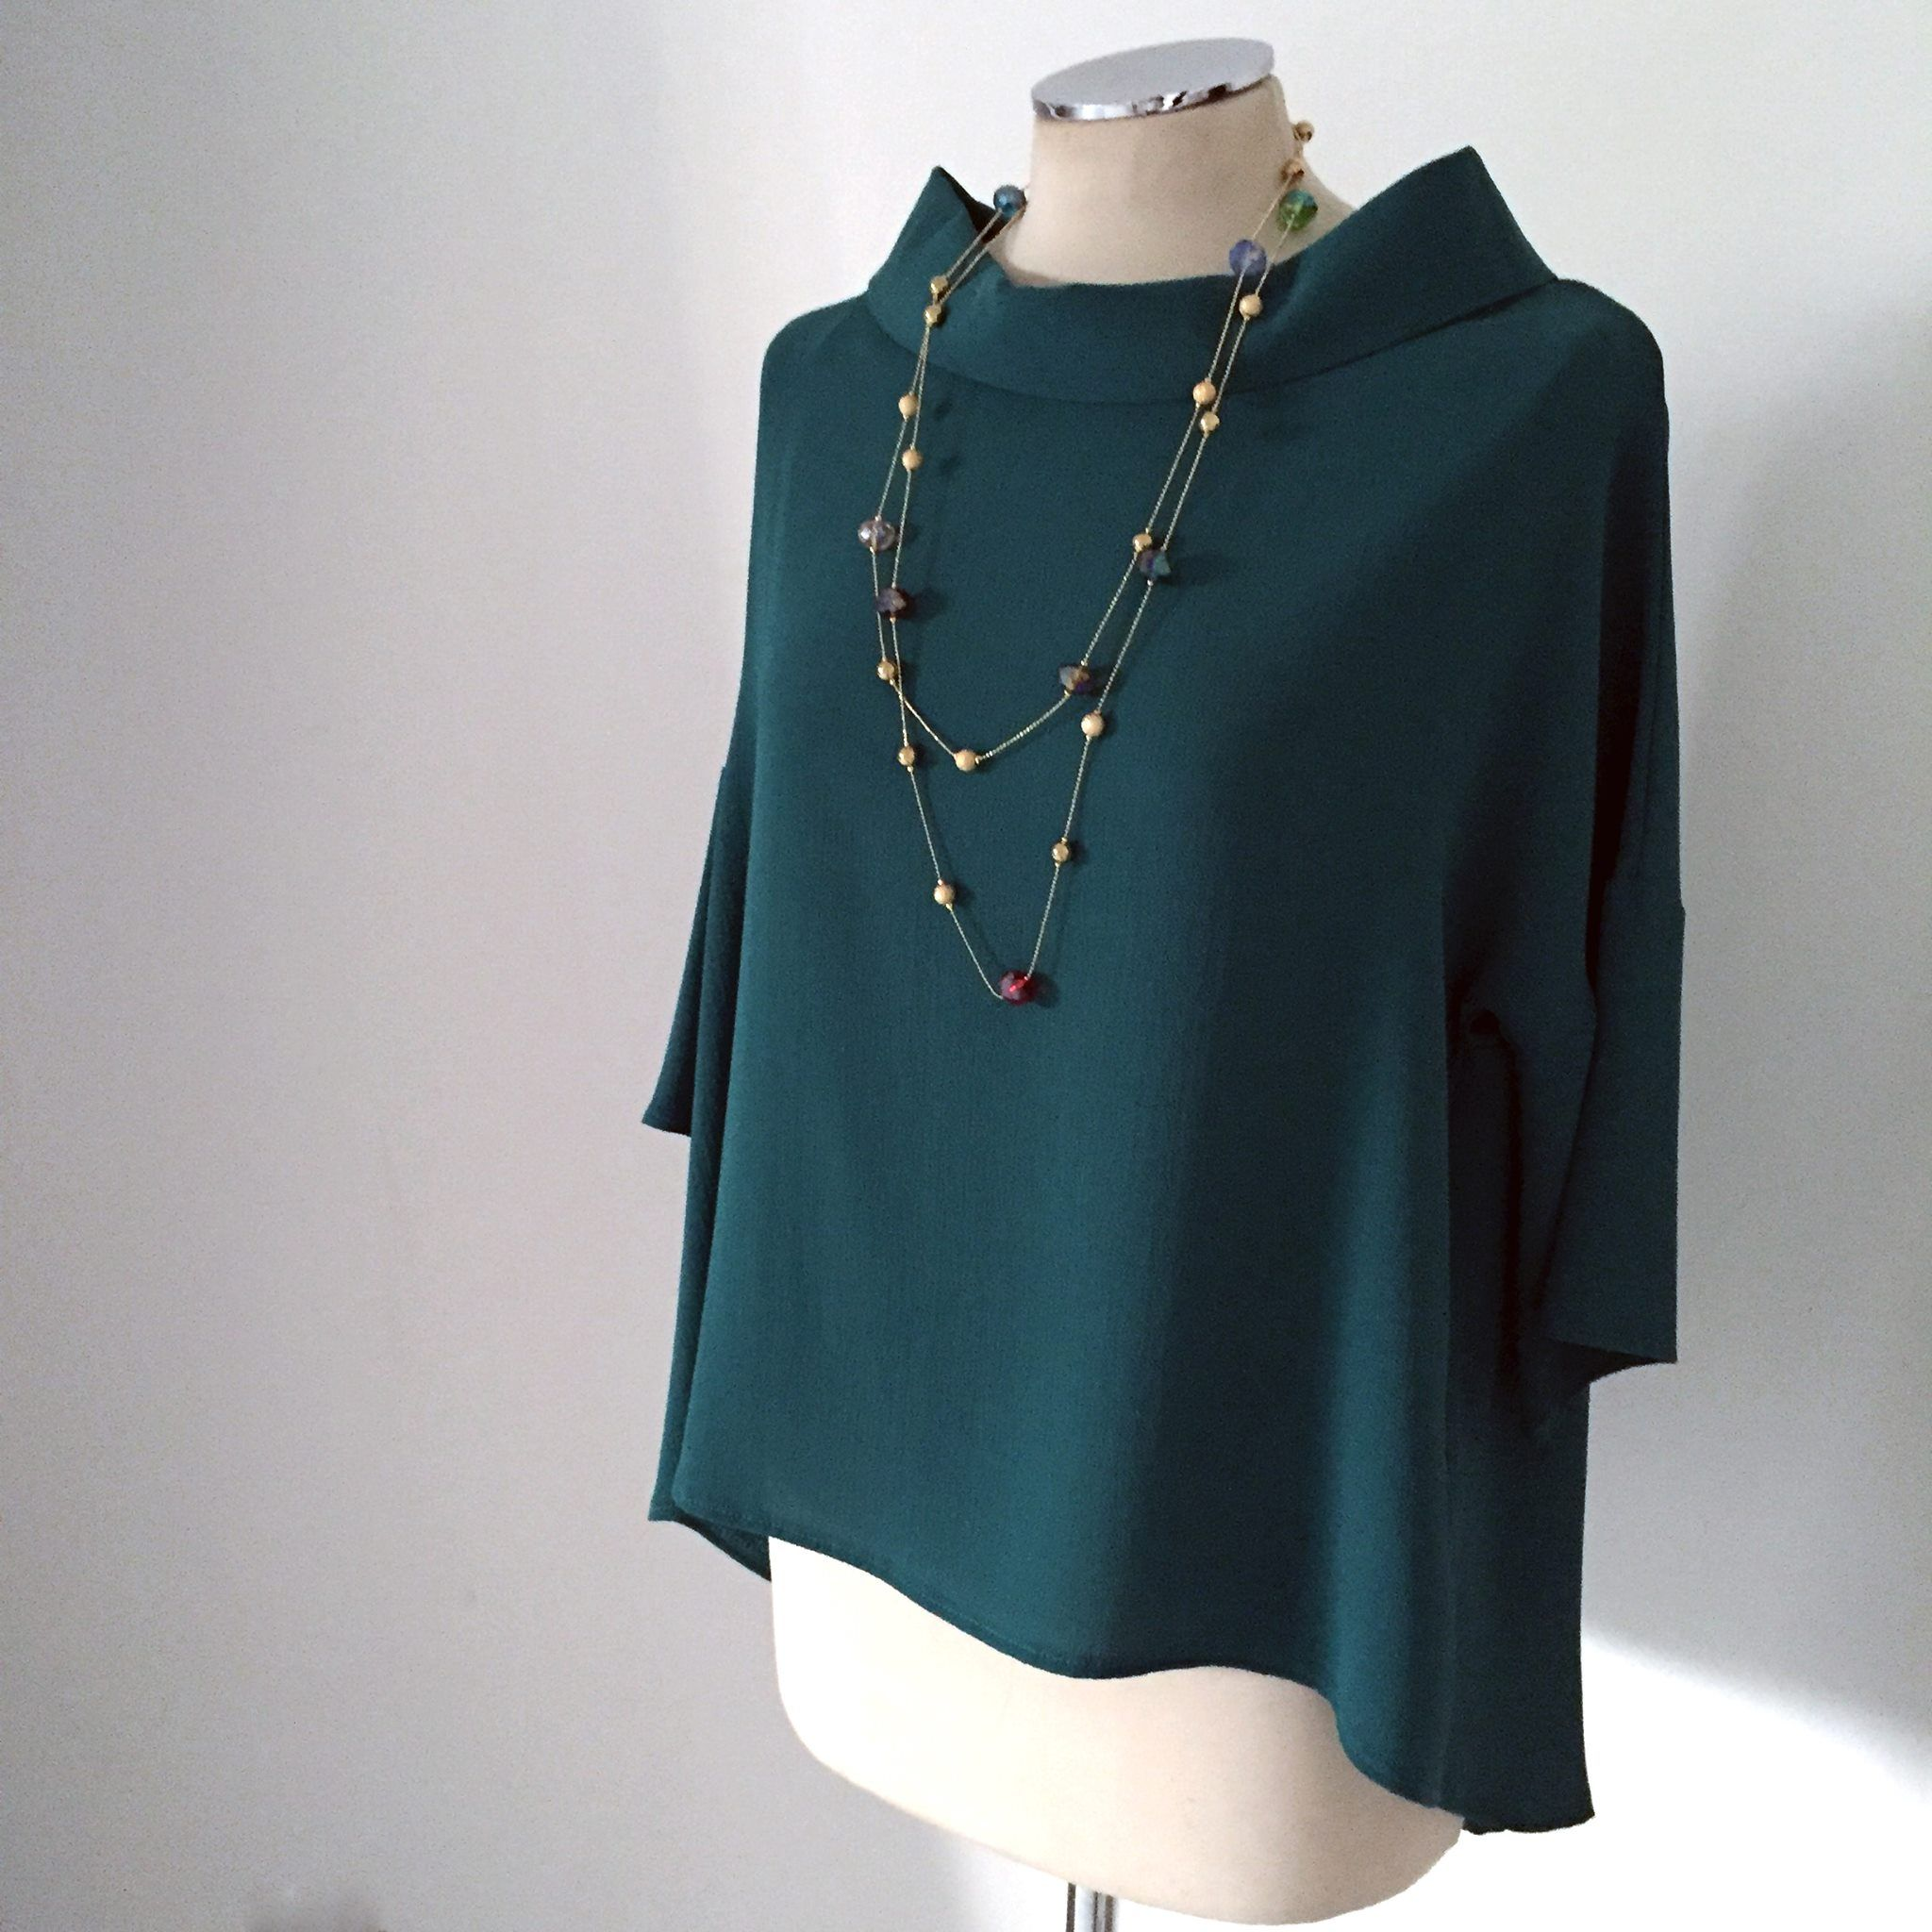 Simply and chic blouse. We love this kind of green! // #green #blouse #look #fashion #chic